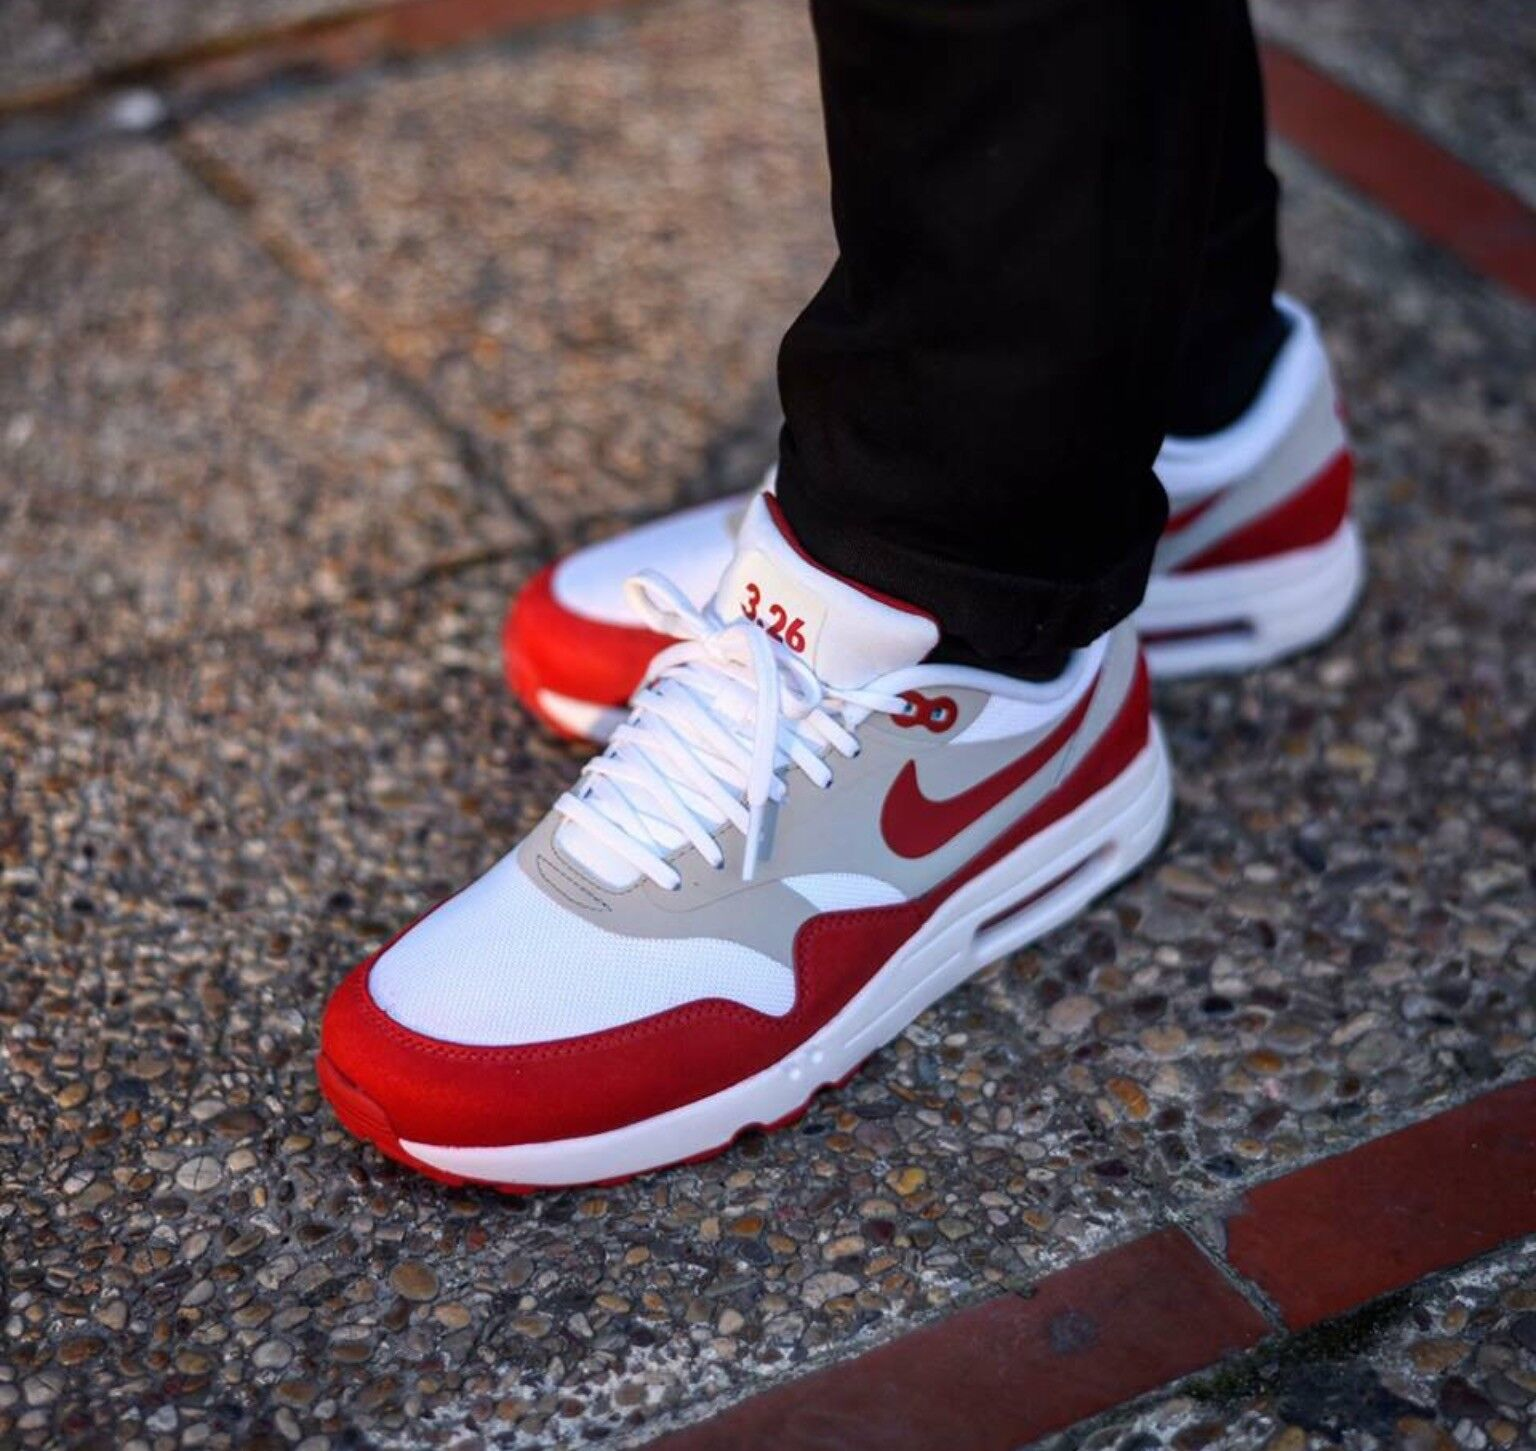 femmes  NIKE AIR MAX 1 ULTRA 2.0 LE 3.26 TRAINERS4.5 blanc /RED115